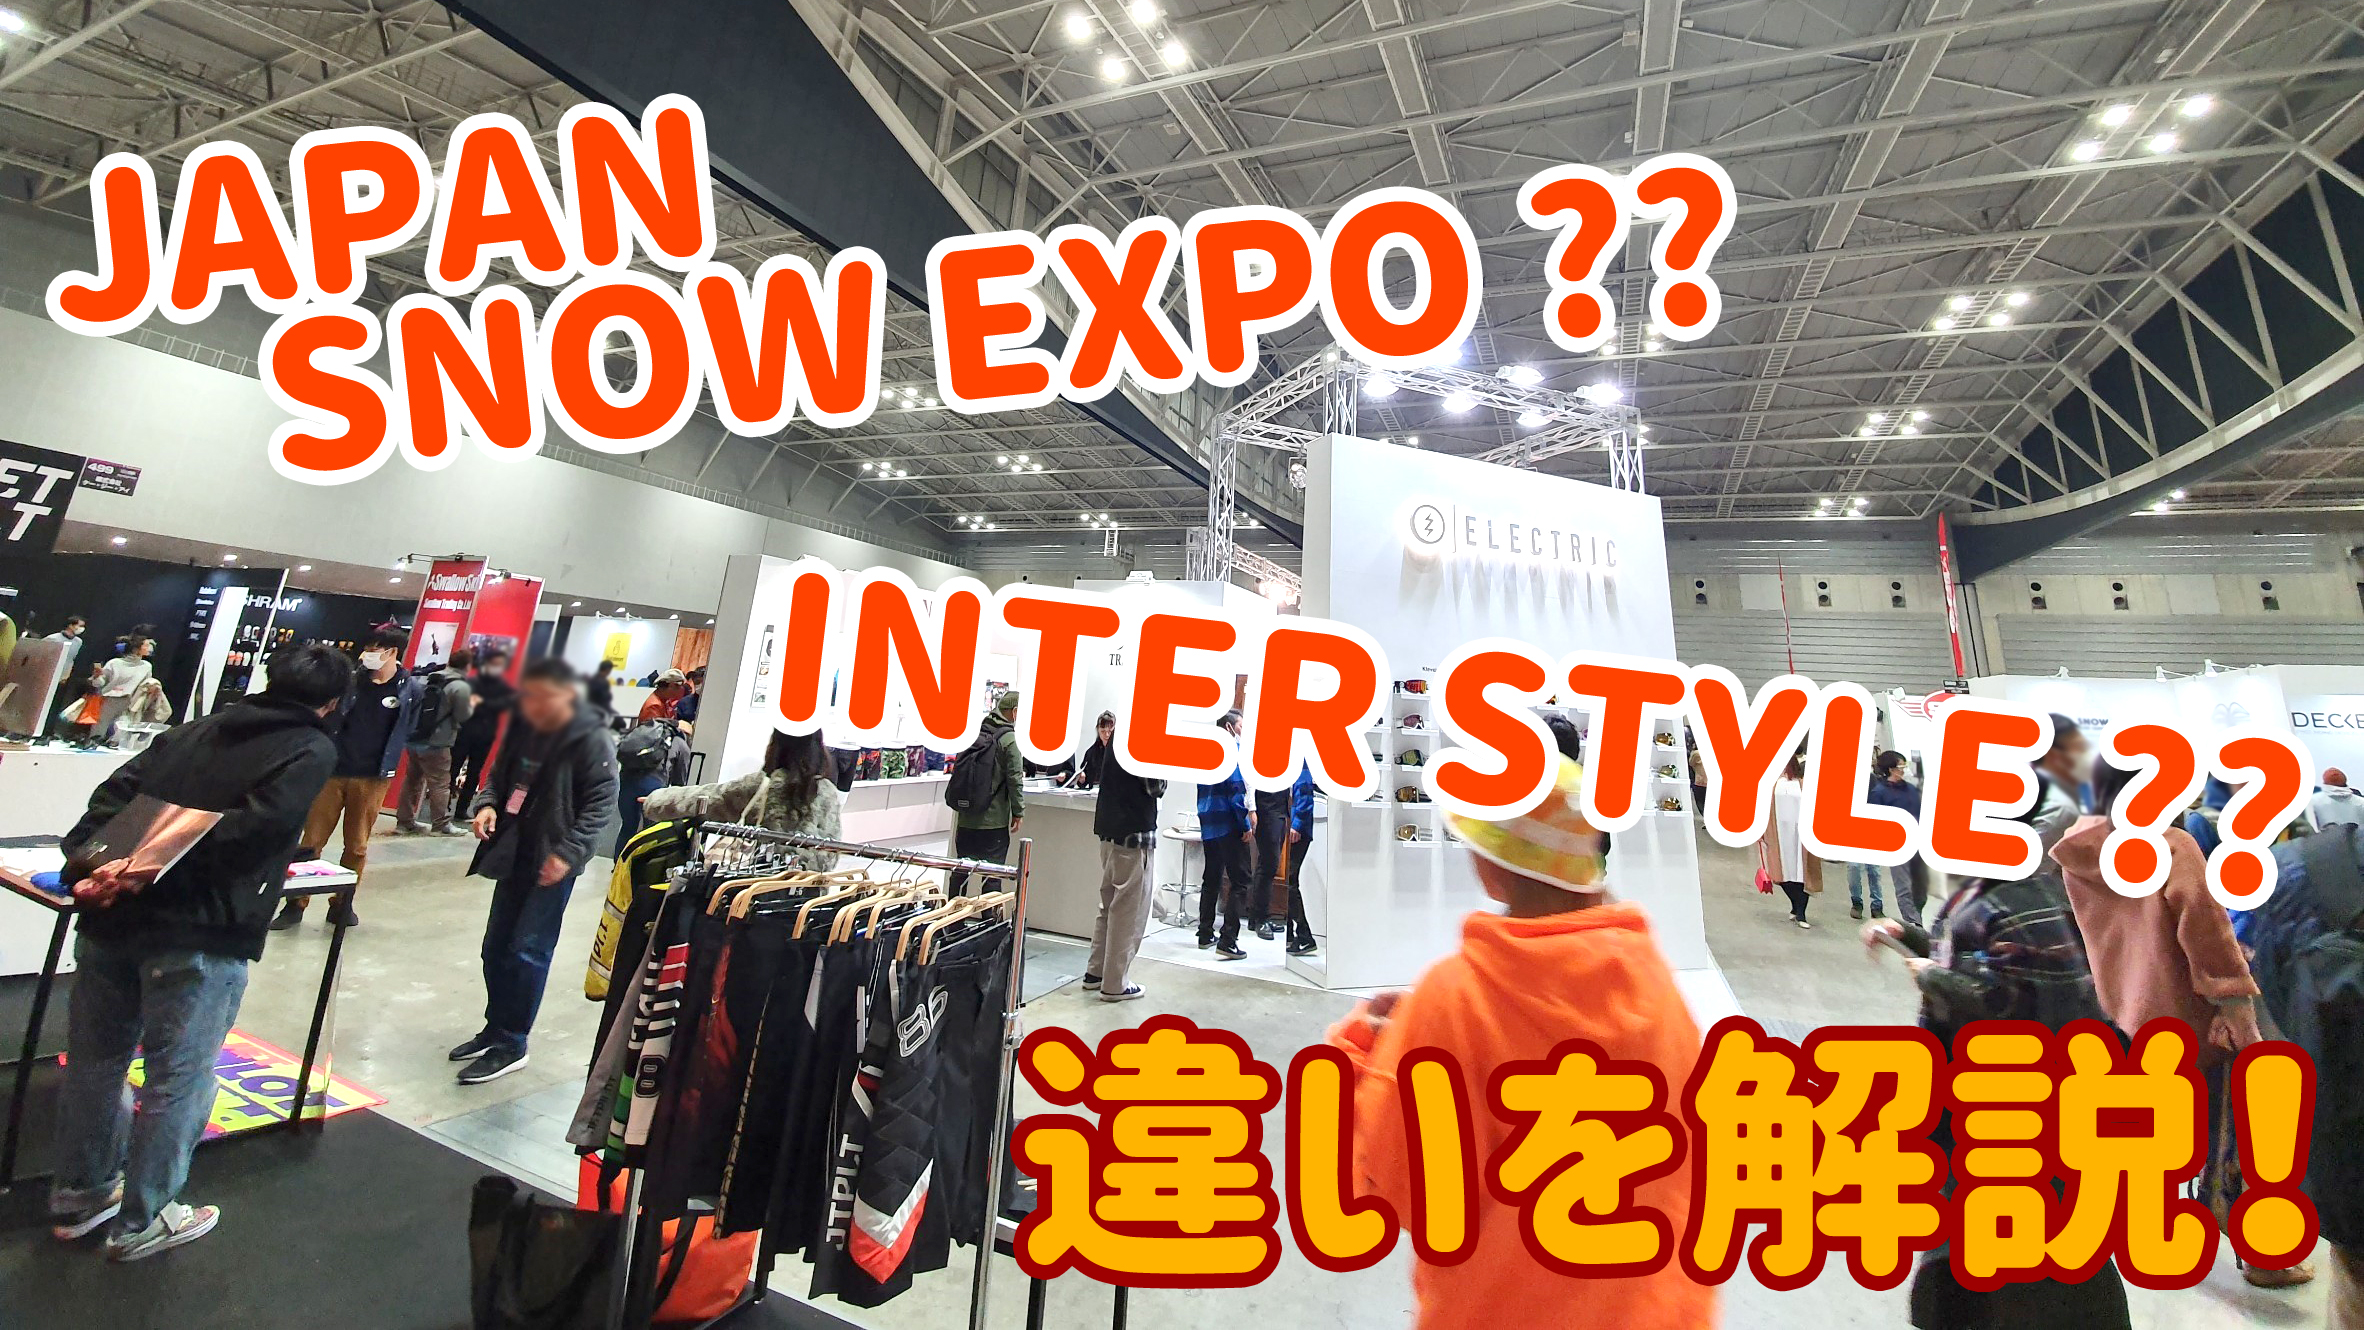 JAPAN SNOW EXPO? INTER STYLE? 違いを解説!